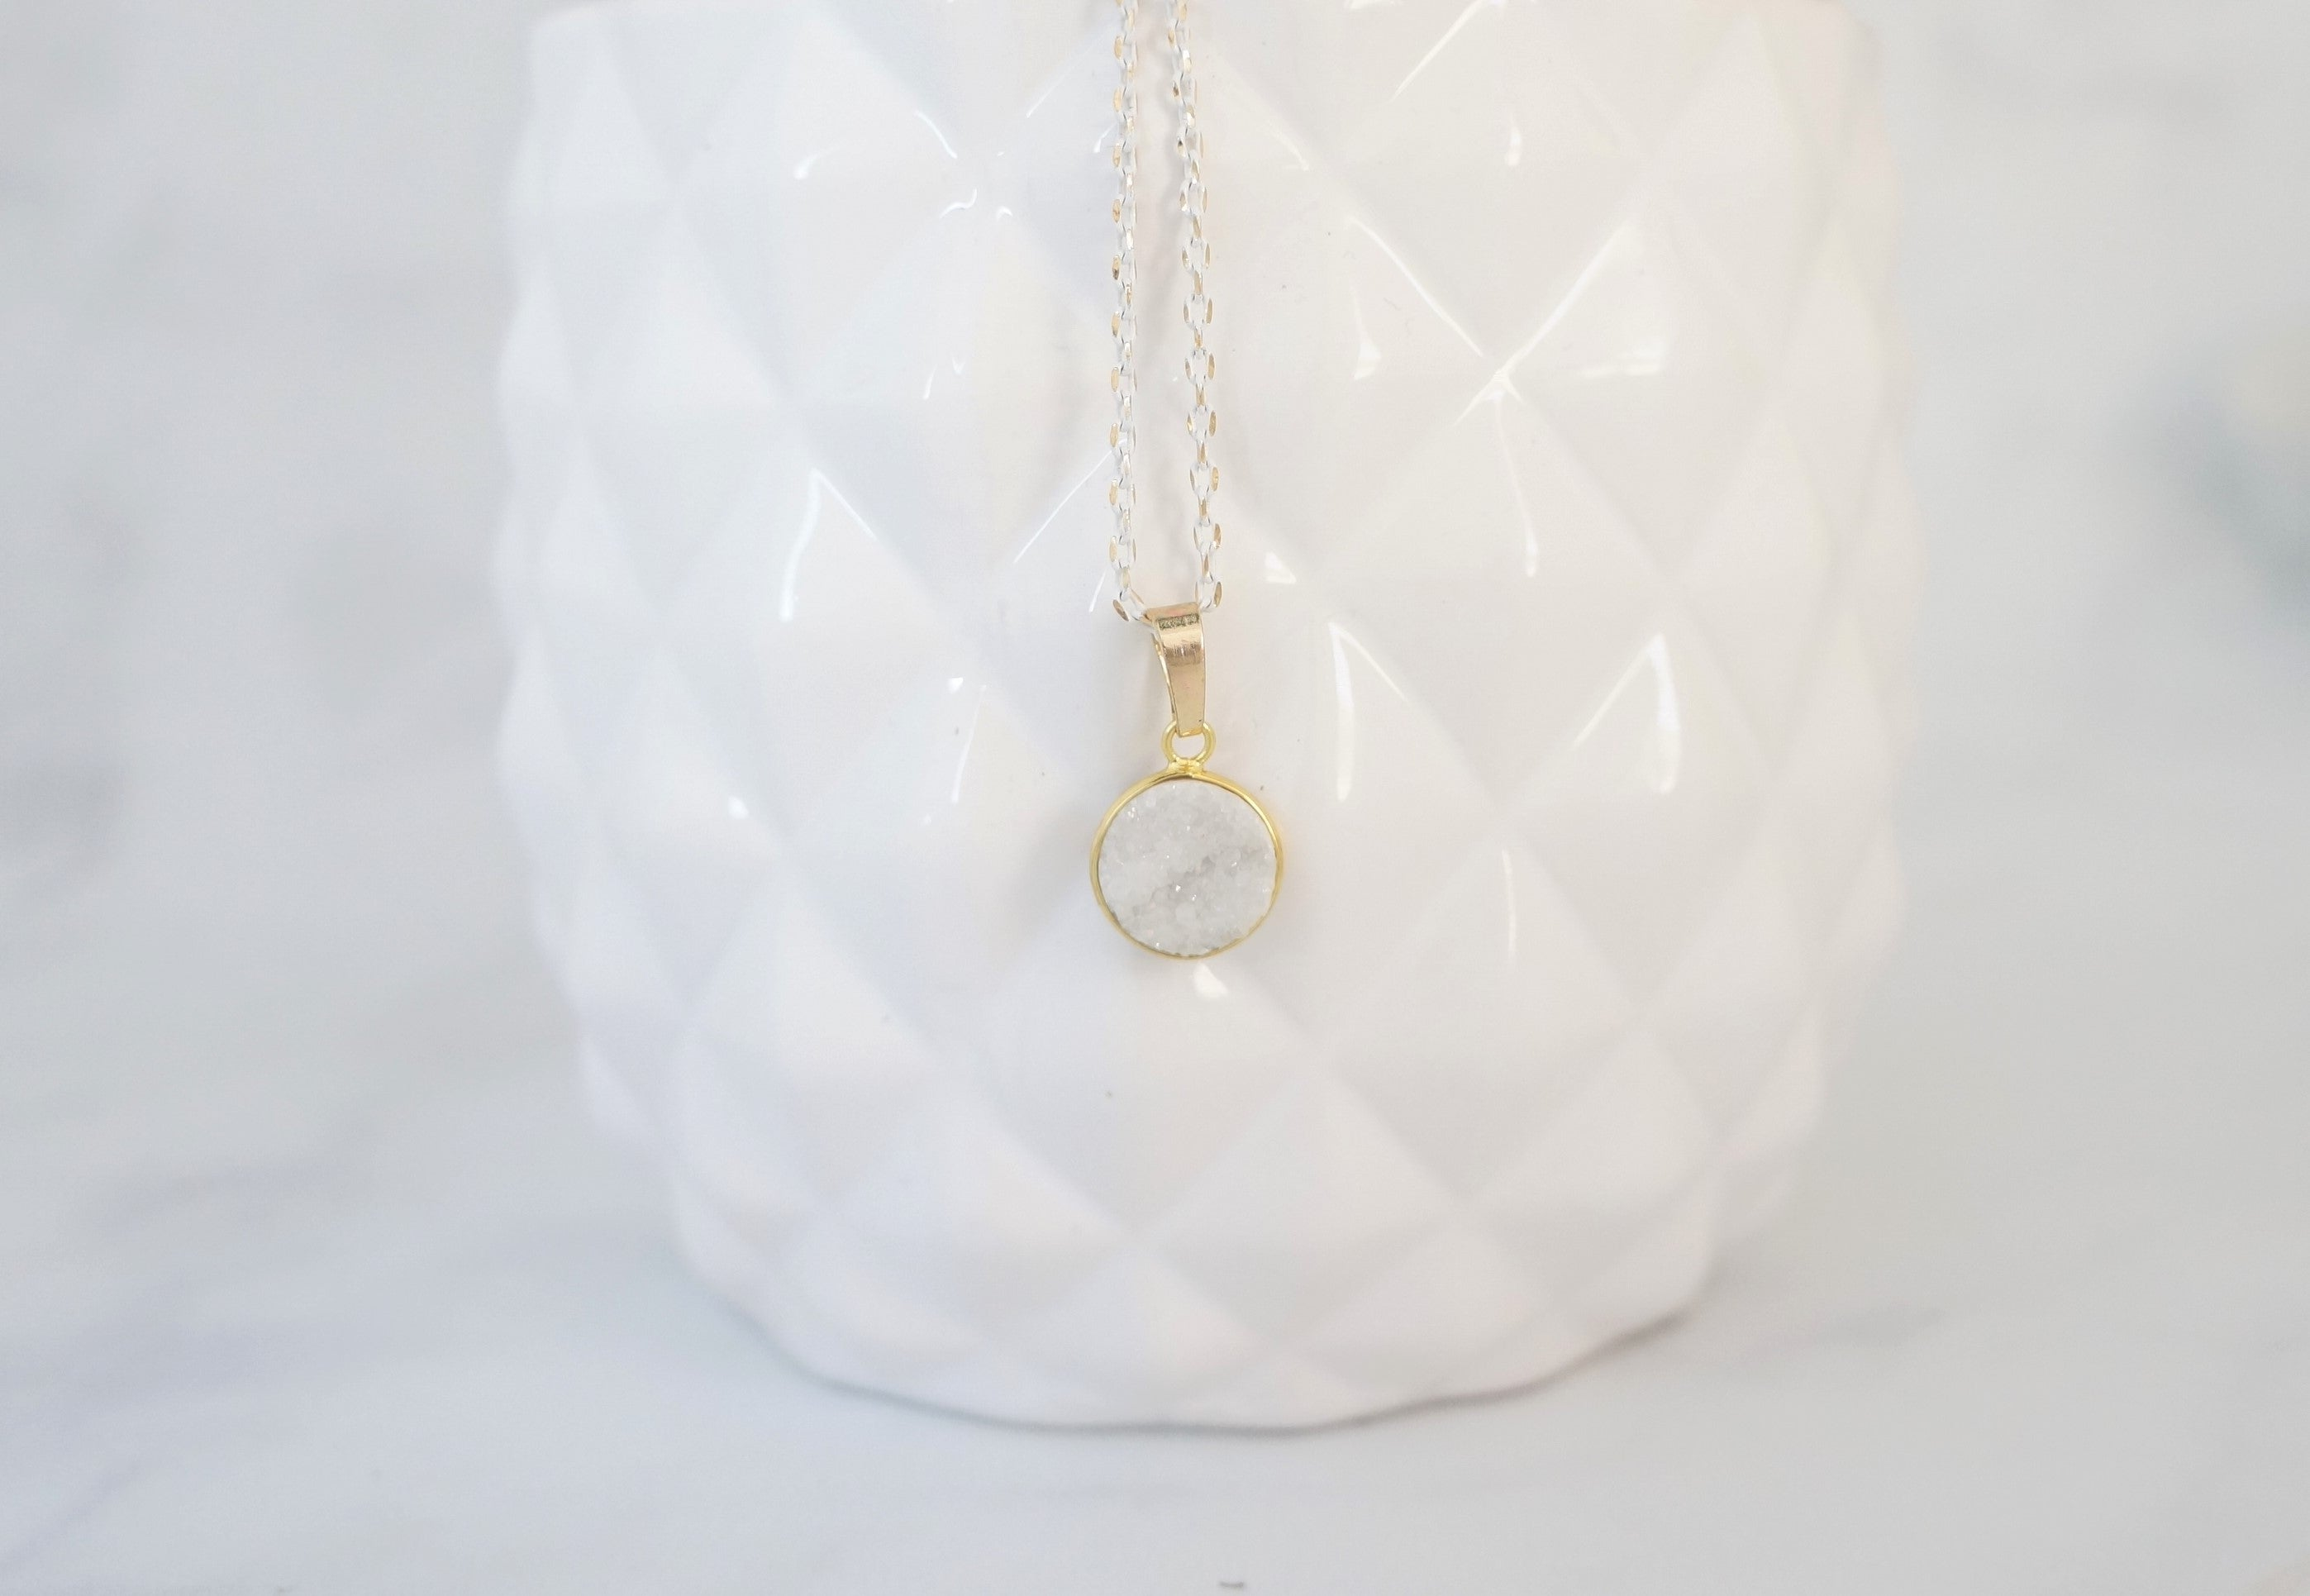 Mindful Necklace - Carolyn Hearn Designs